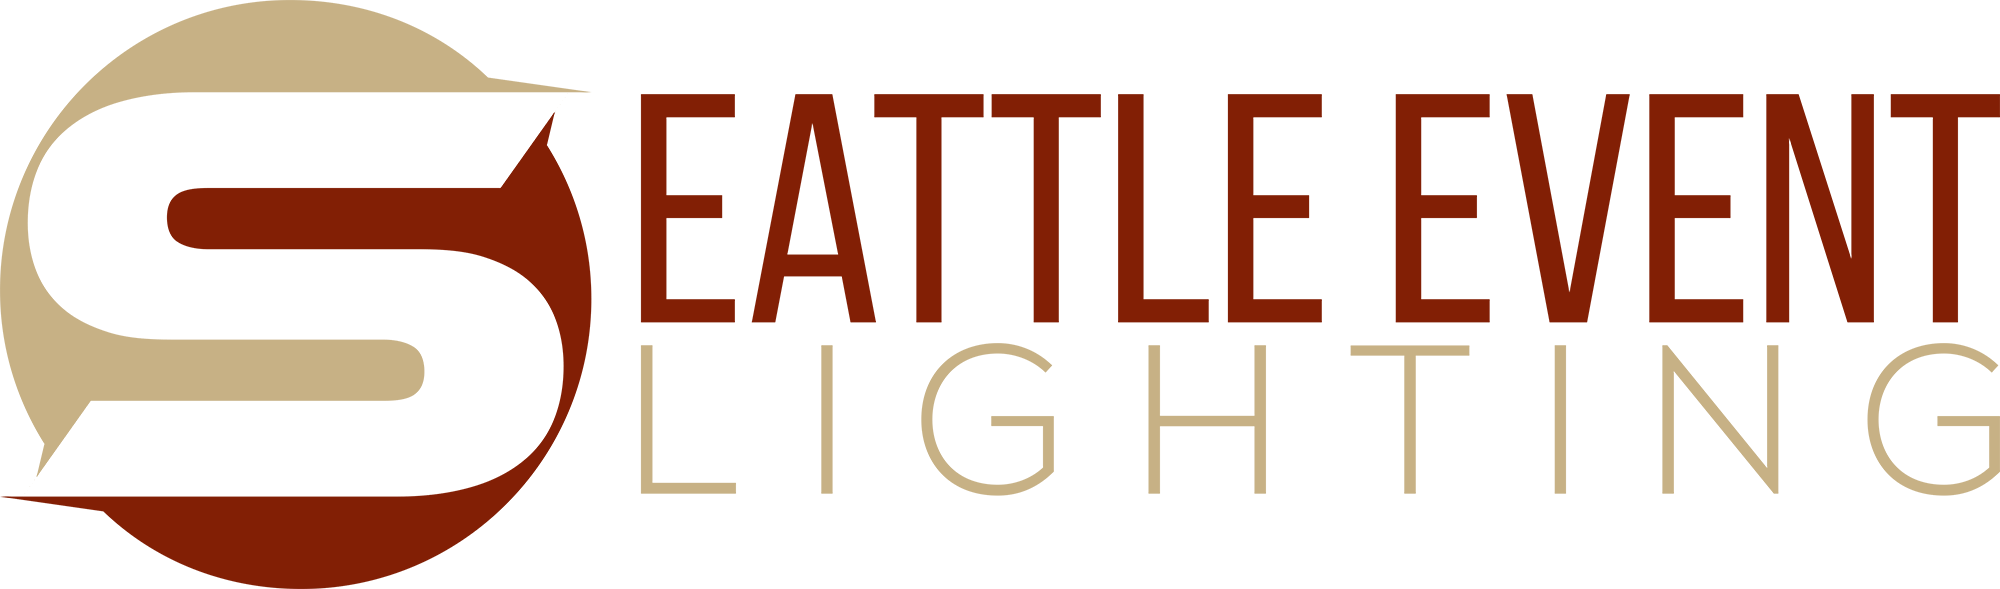 Seattle Event Lighting